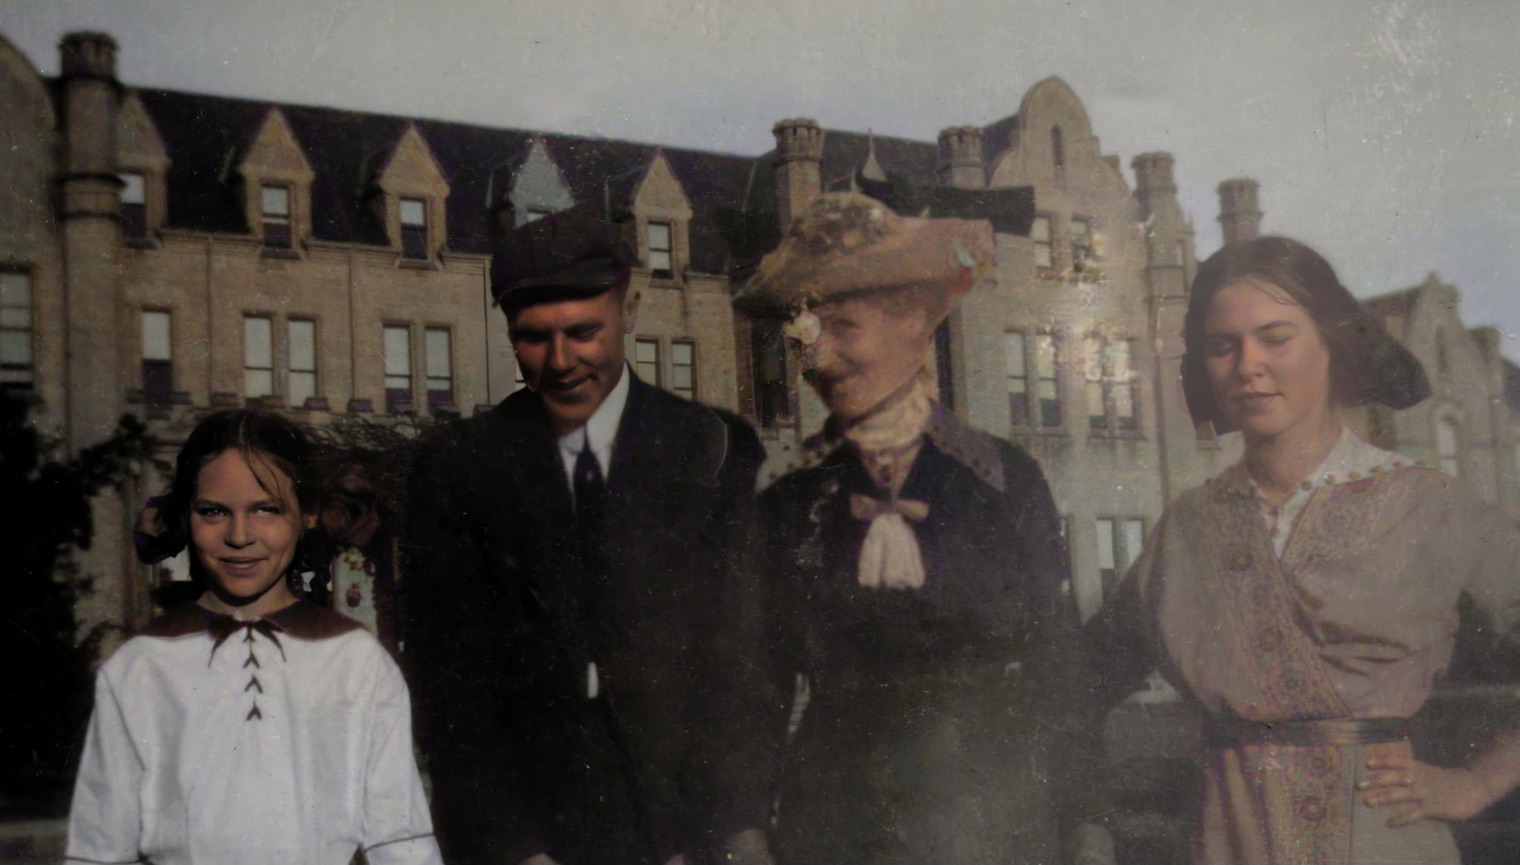 Frances, Earl, Lizzie, and Helen Price at Ontario Ladies' College